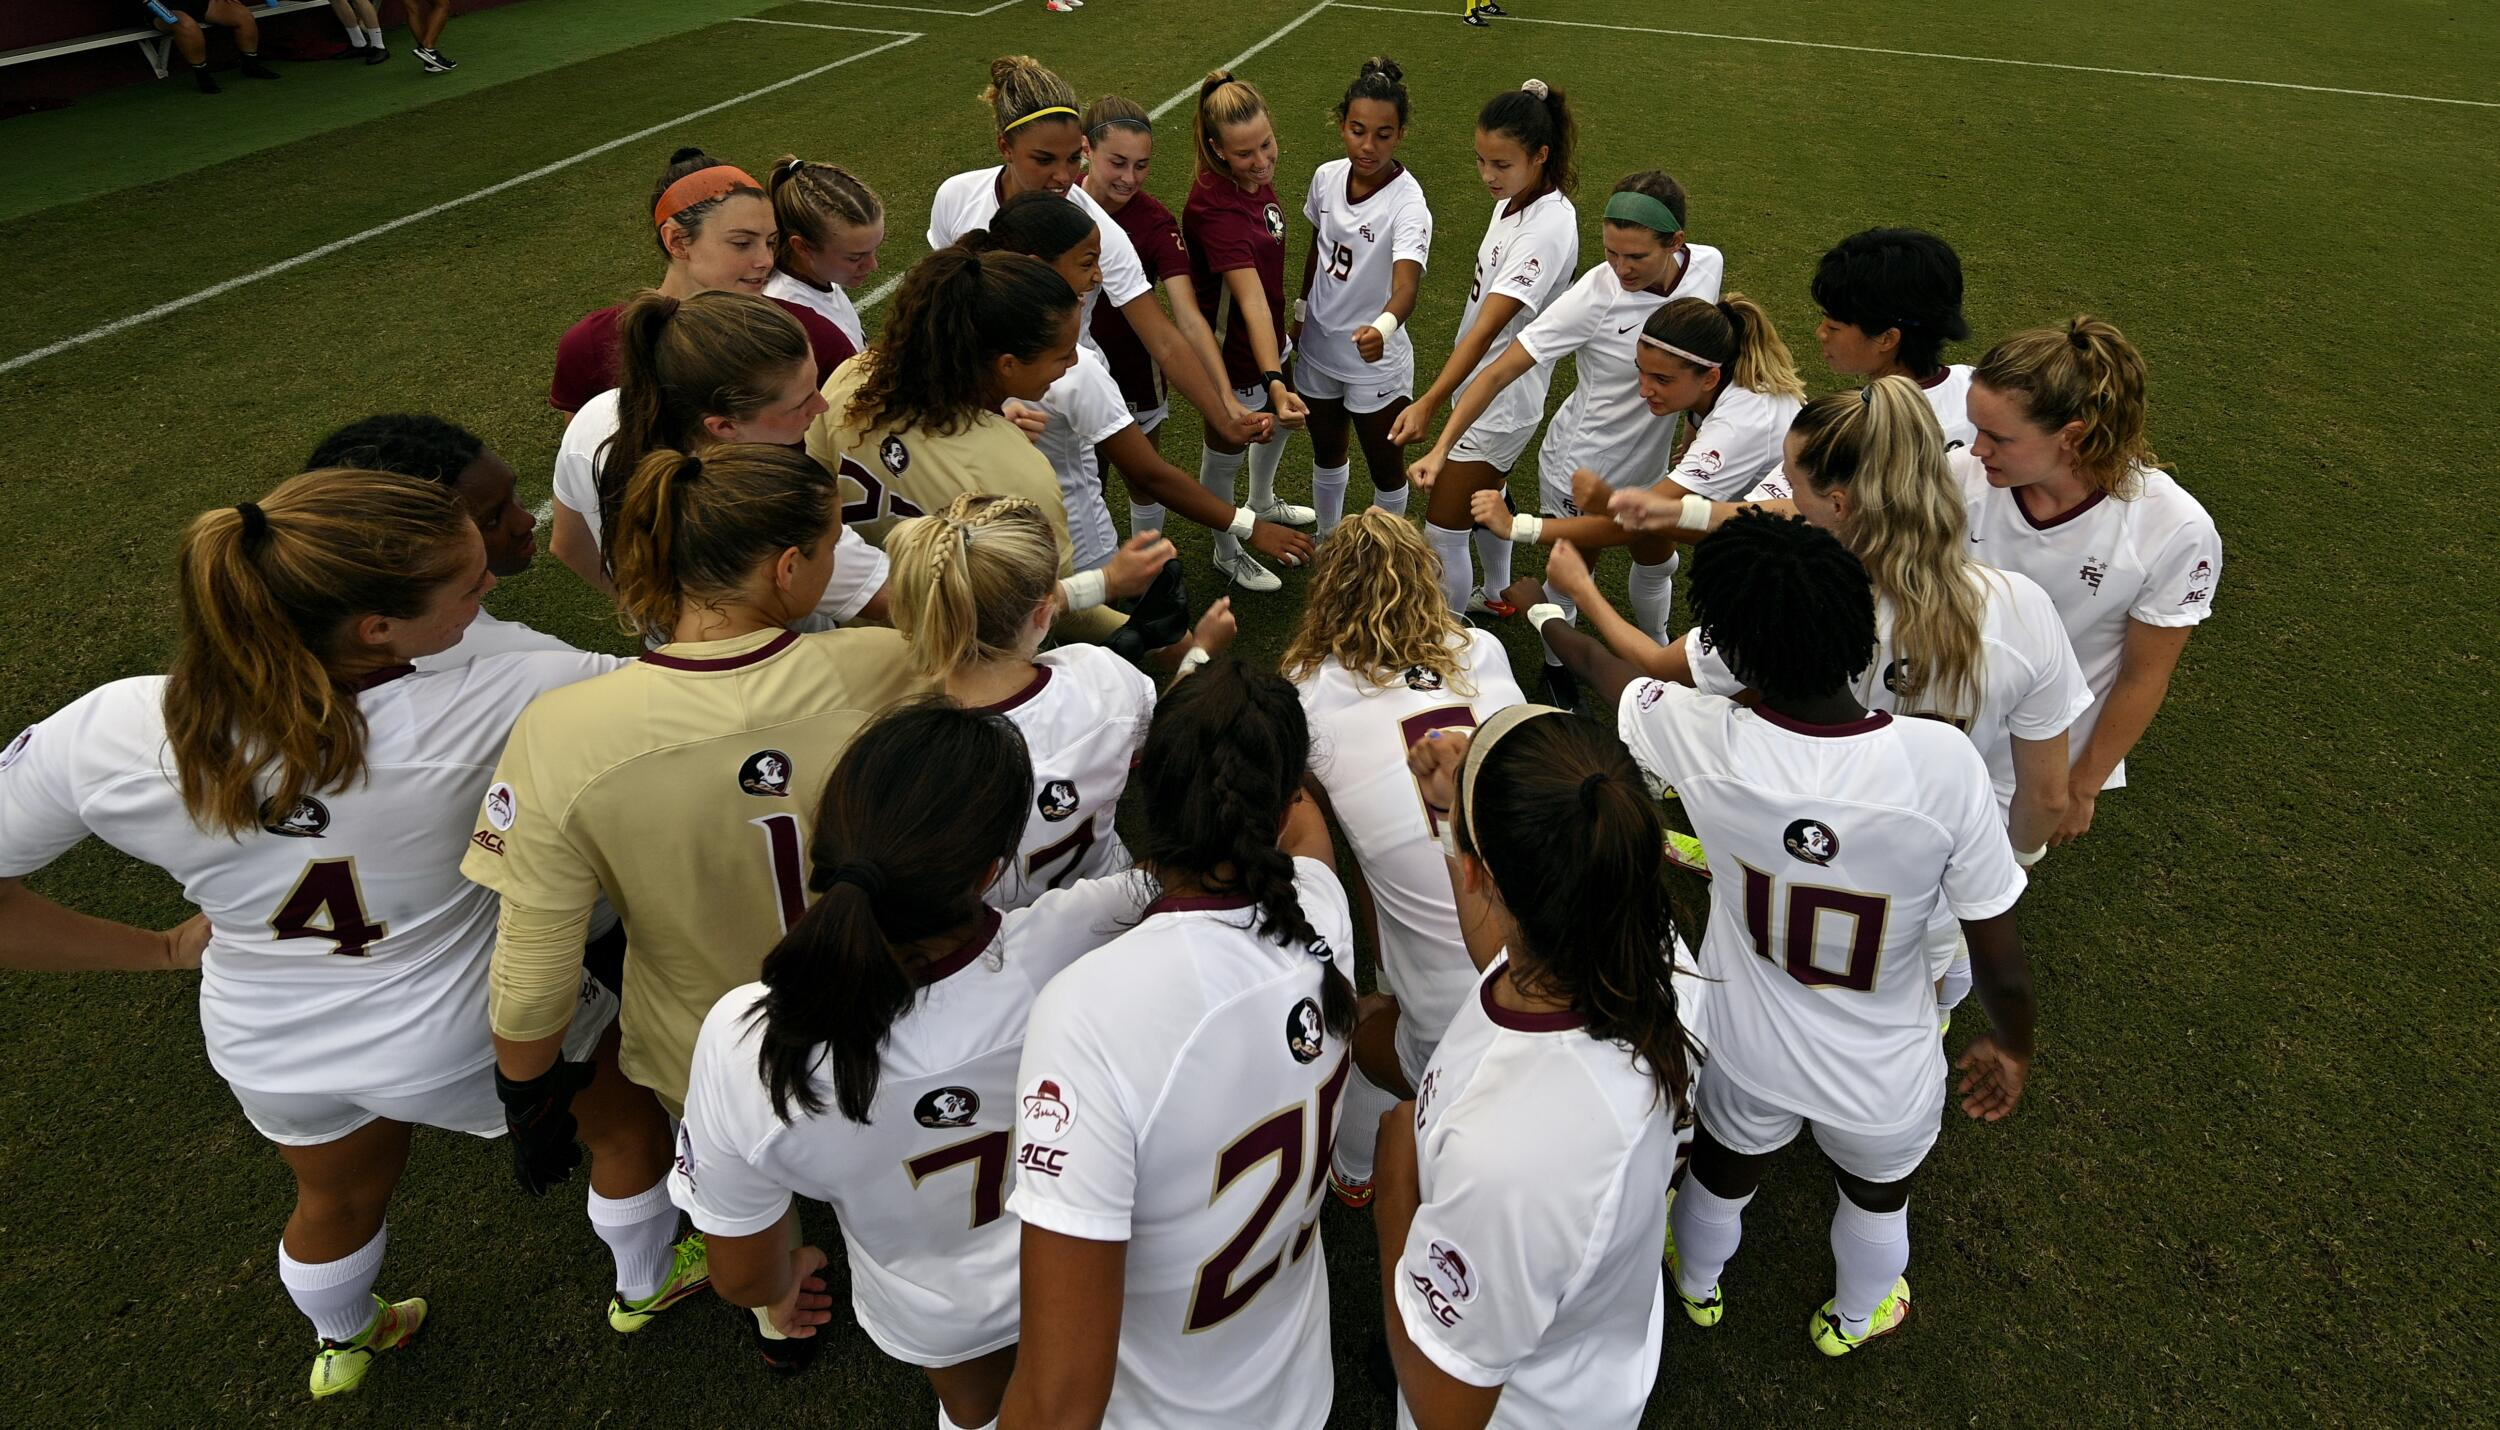 FSU Athletics Recap Of The Week: Soccer Stays Hot, Volleyball Is Back!